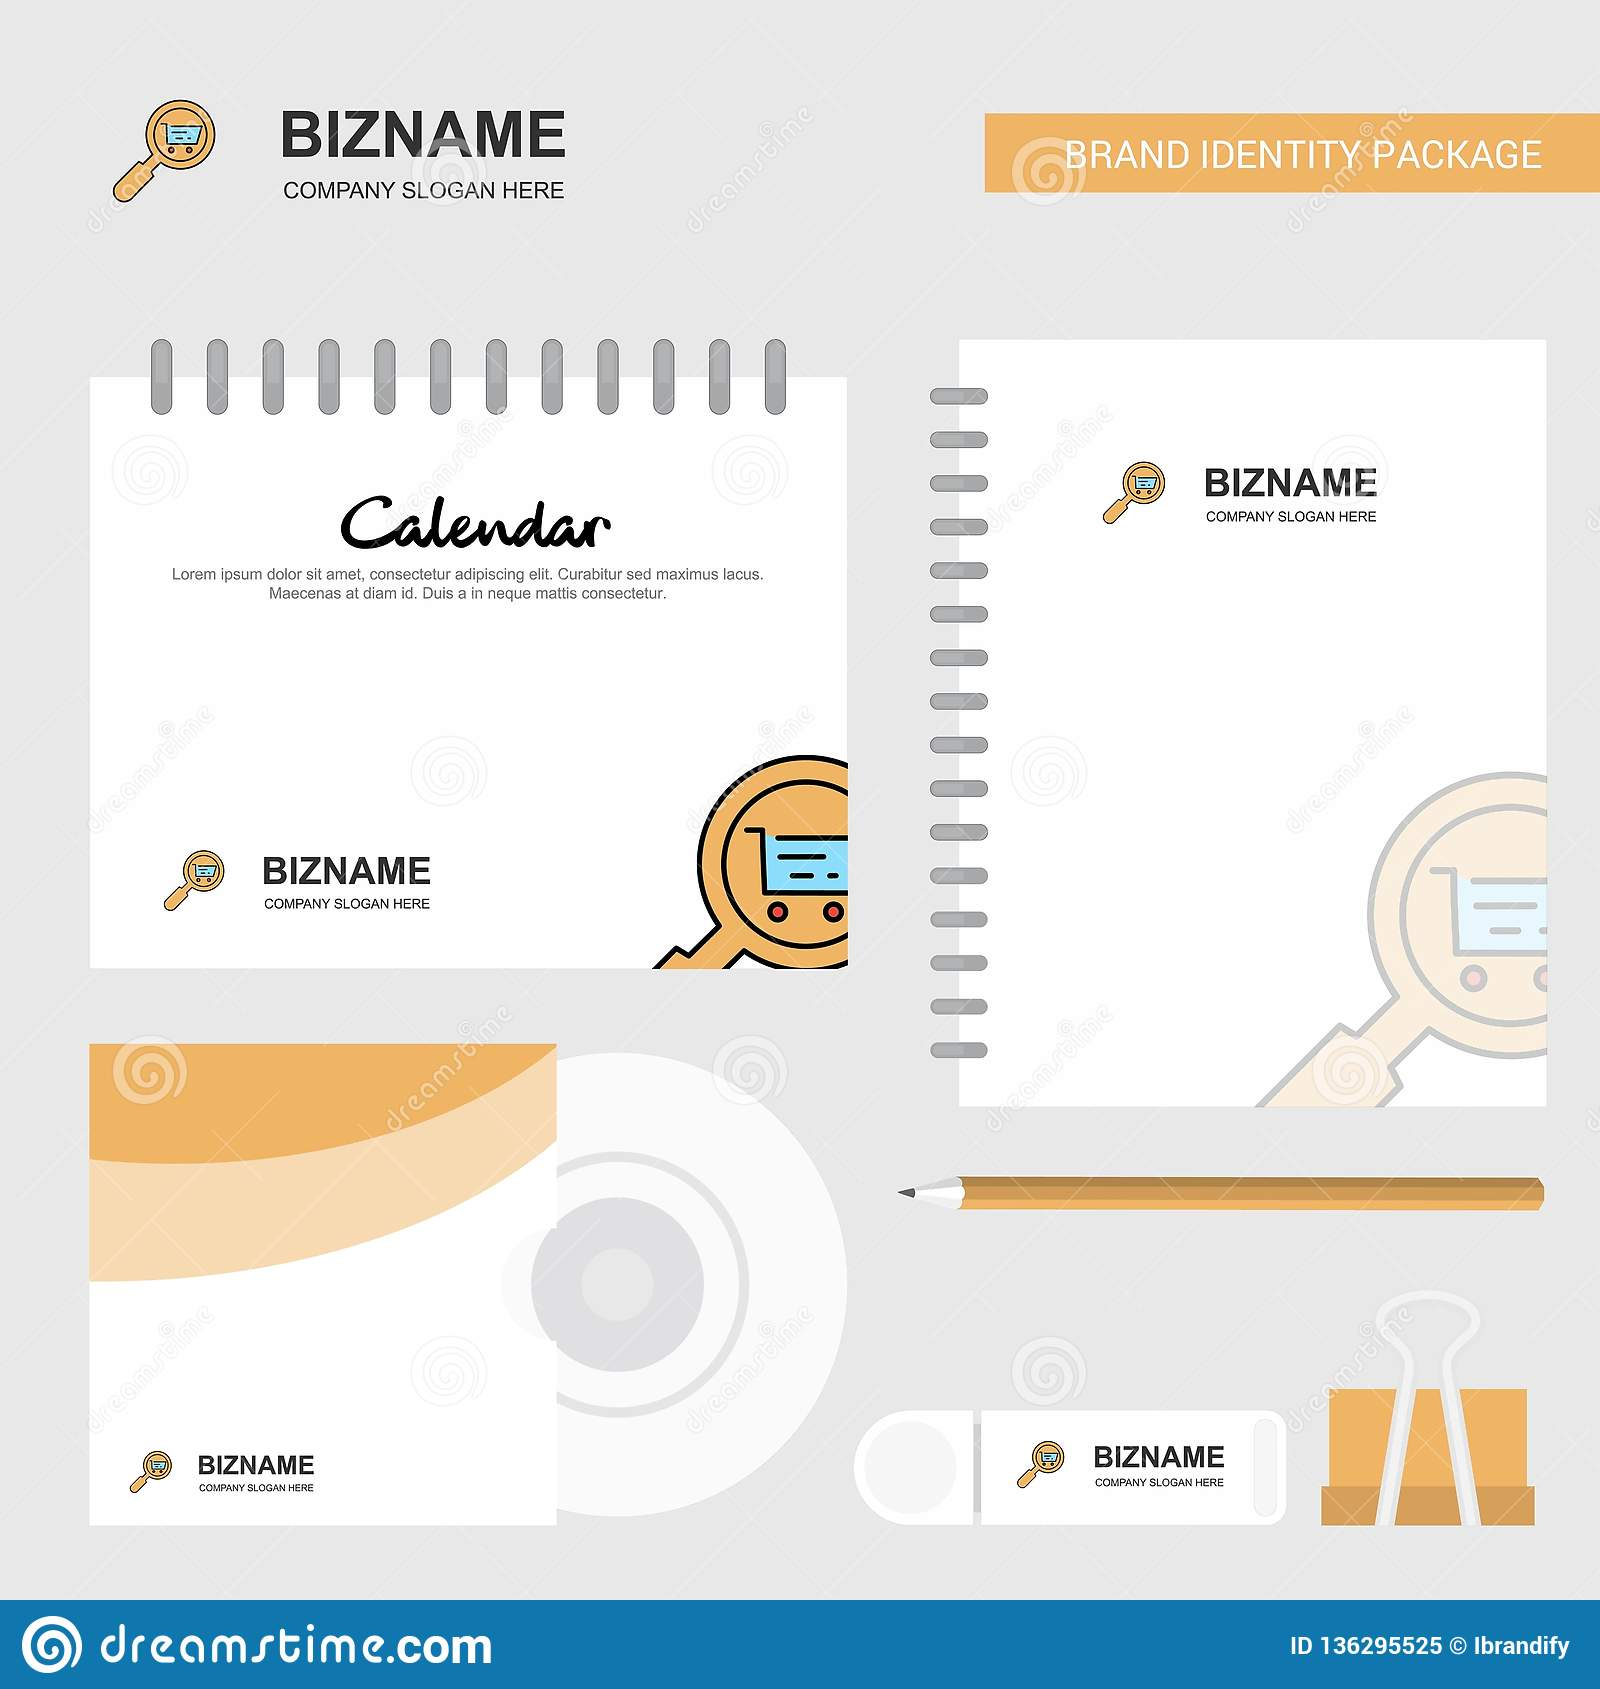 Search goods online Logo, Calendar Template, CD Cover, Diary and USB Brand Stationary Package Design Vector Template